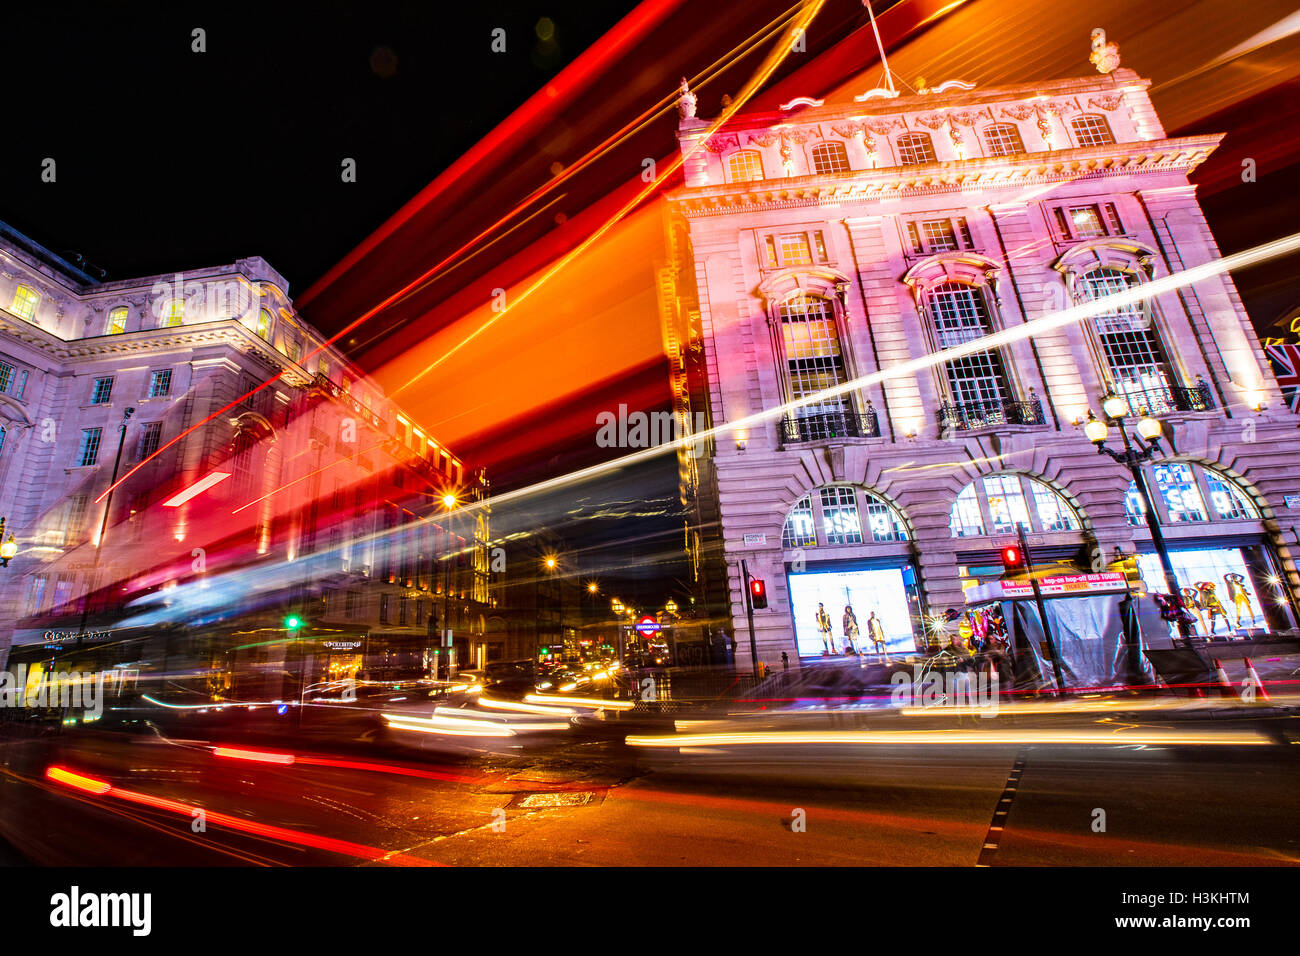 Light Trail Trails am Londoner Piccadilly Circus Stockbild